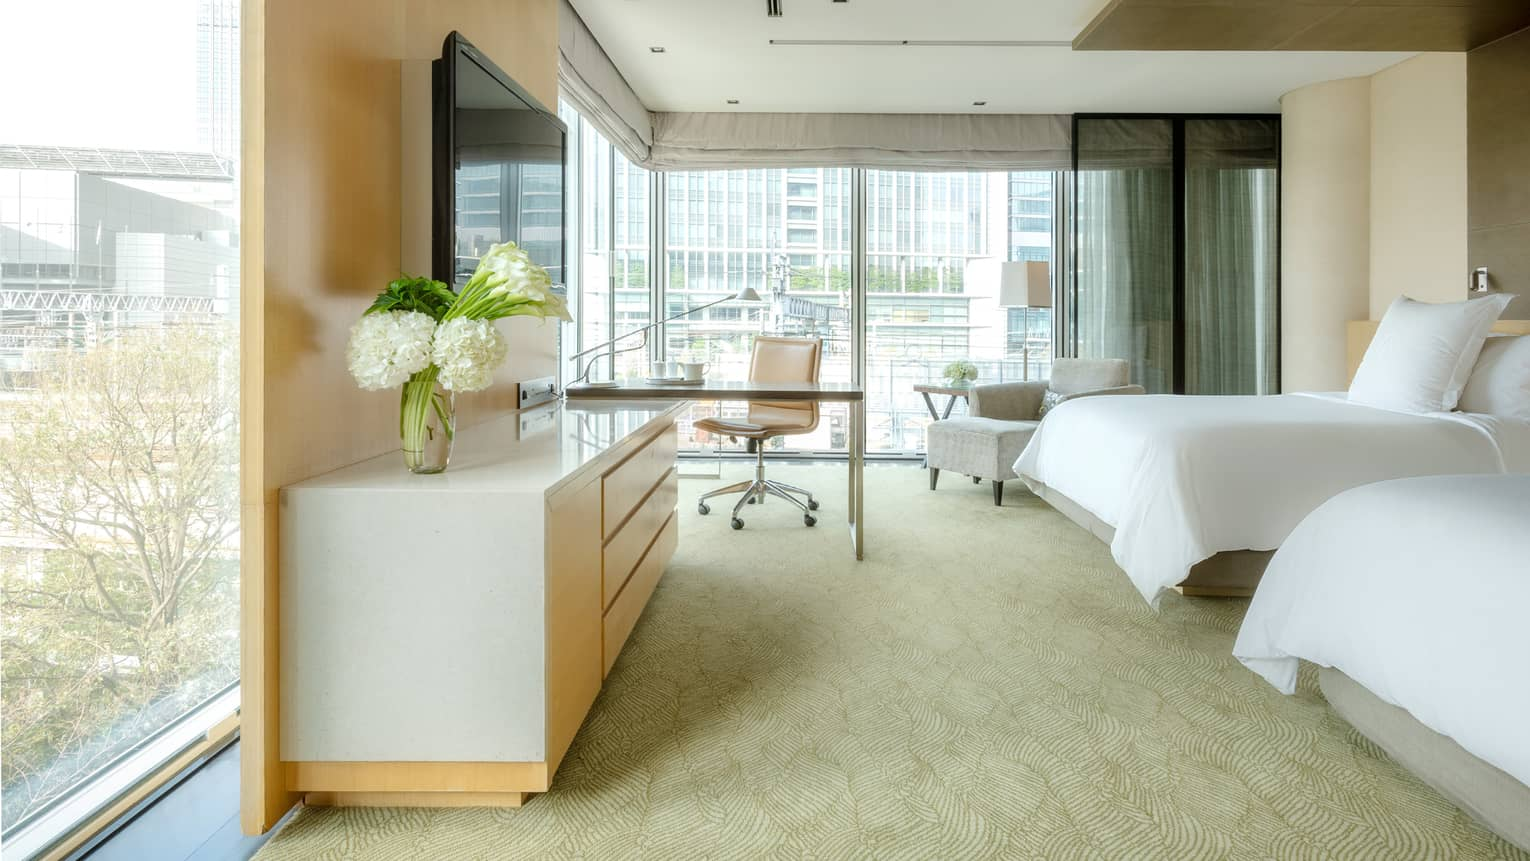 Deluxe Premier Twin Room with desk area and floor-to-ceiling corner windows looking out onto the city skyline